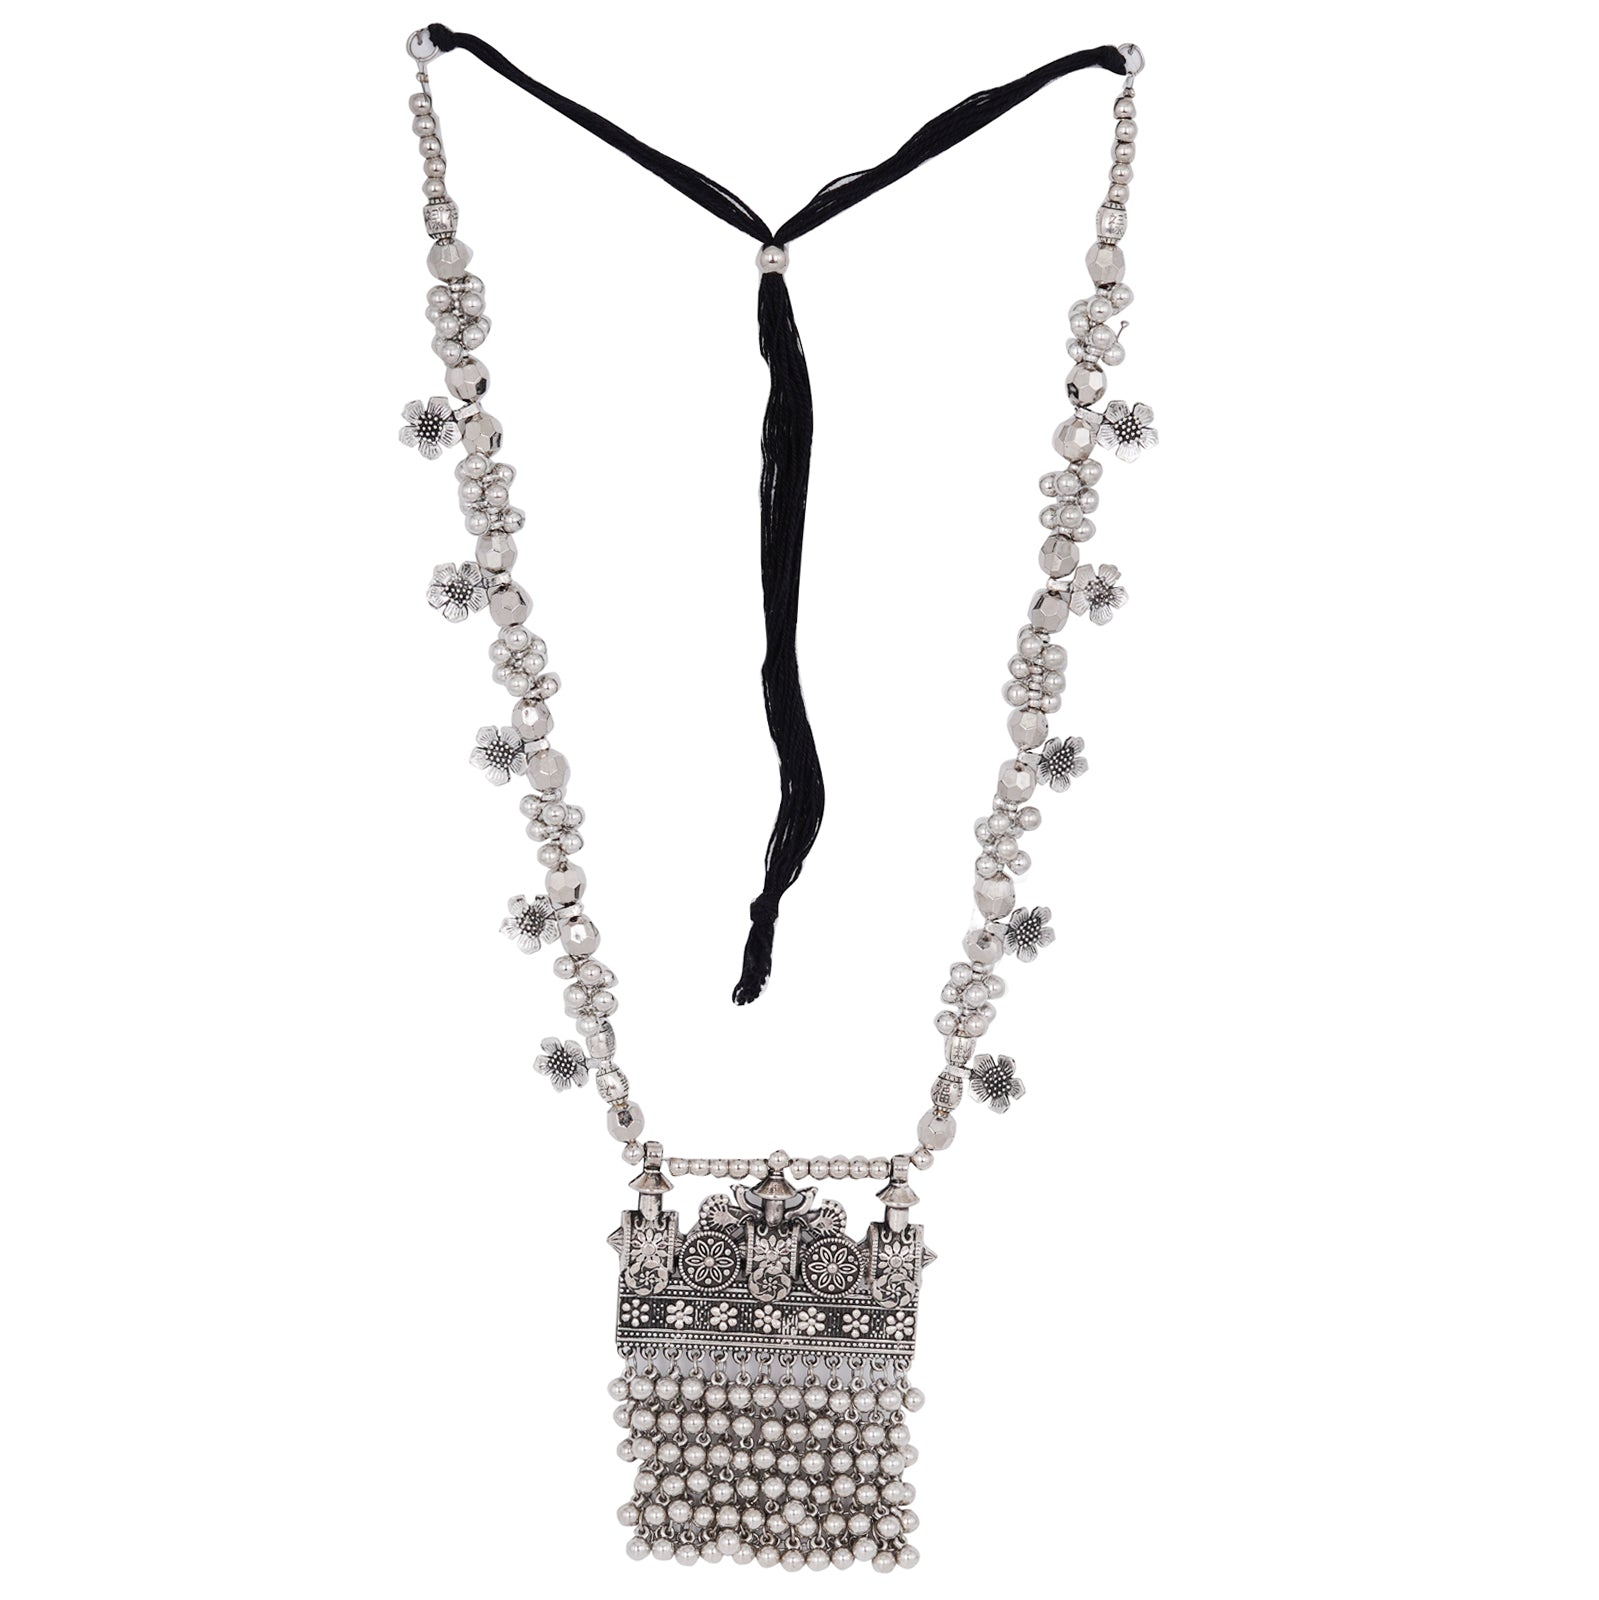 Teejh Nihan Silver Oxidised ghungroo Long necklace